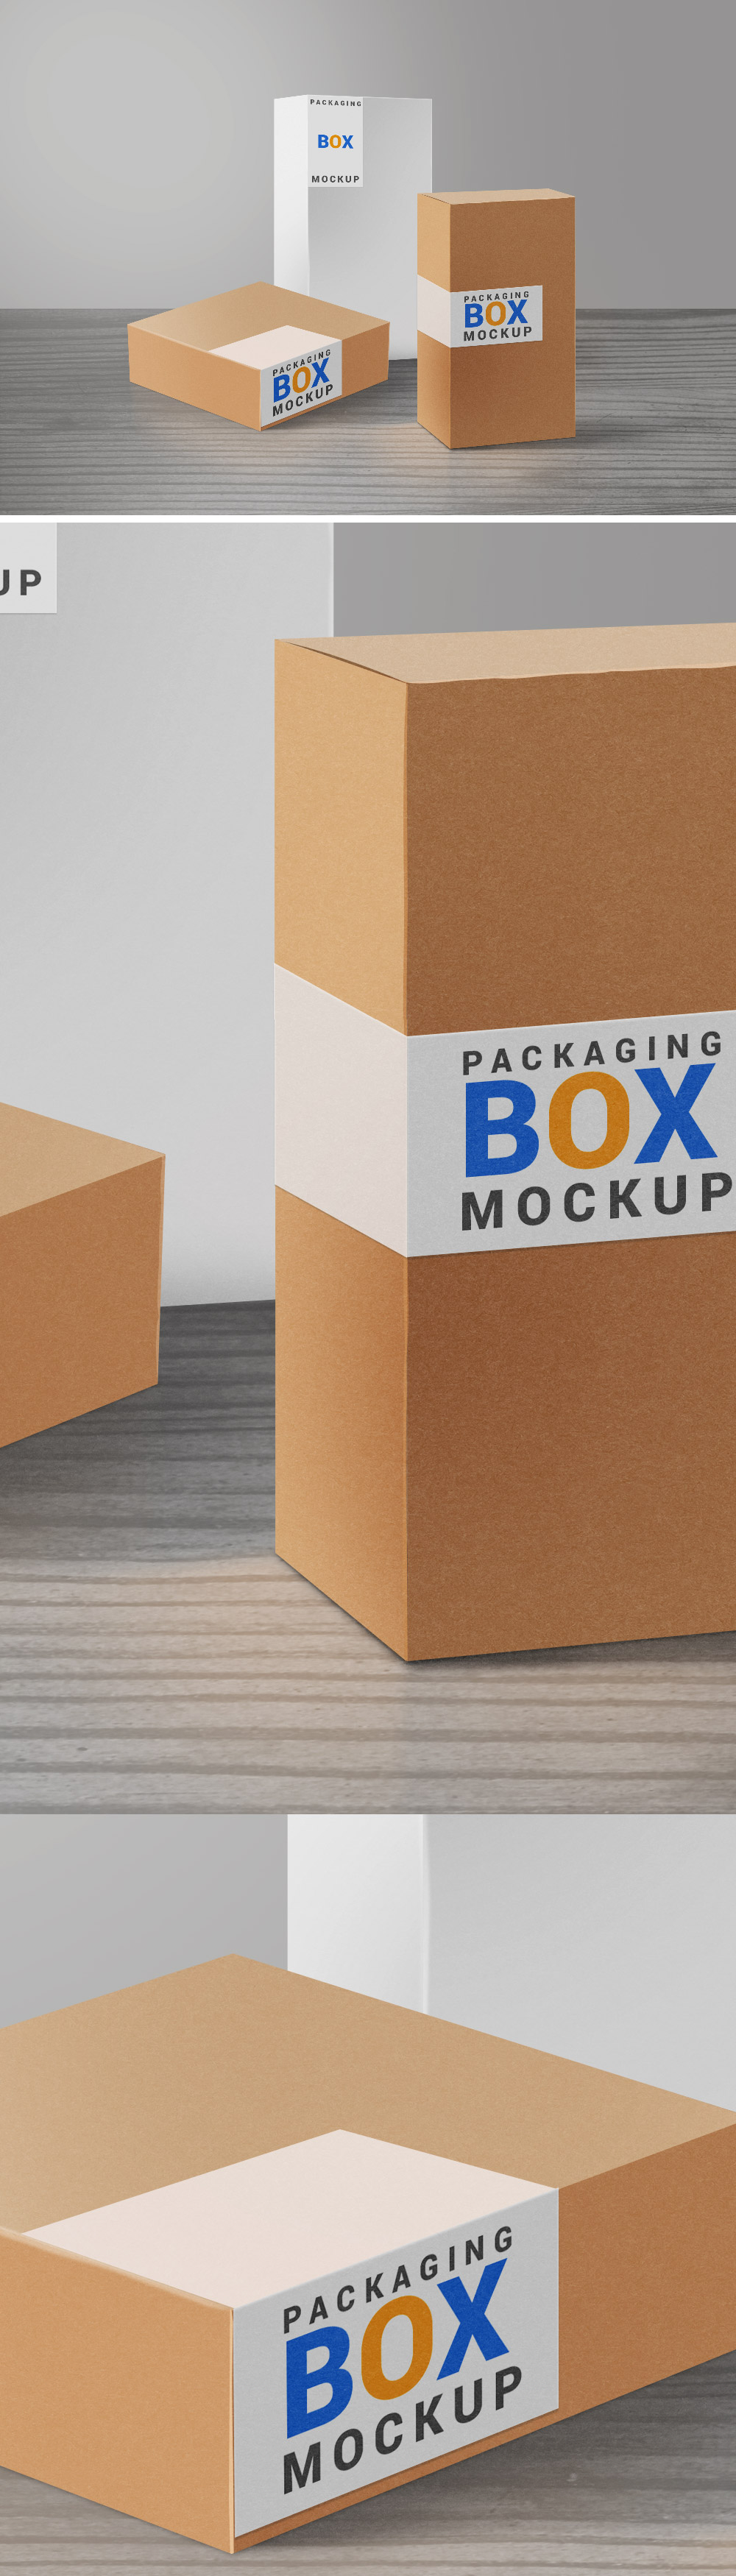 Download Product Packaging Boxes Psd Mockup Graphicsfuel Box Mockup Mockup Free Psd Mockup